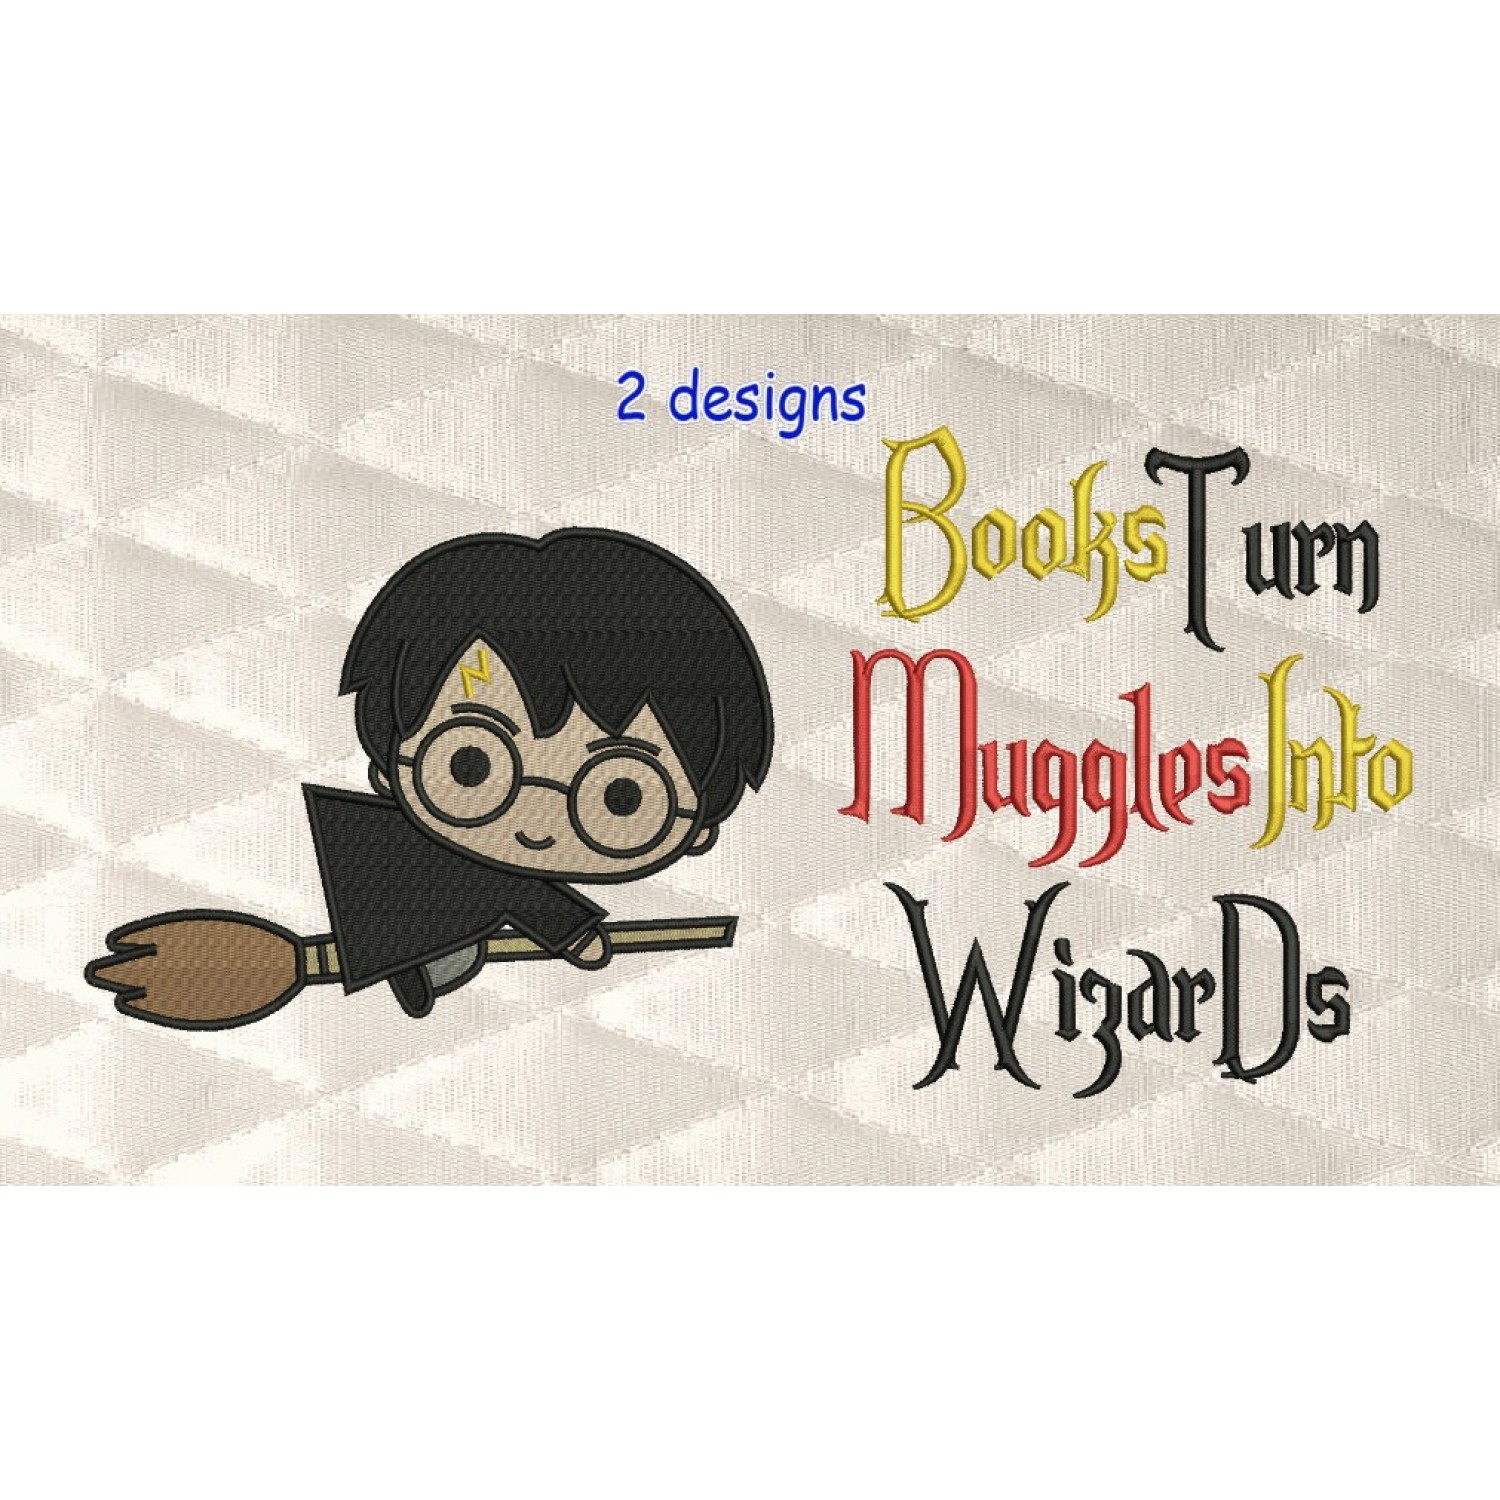 Harry potter Broom with books turn